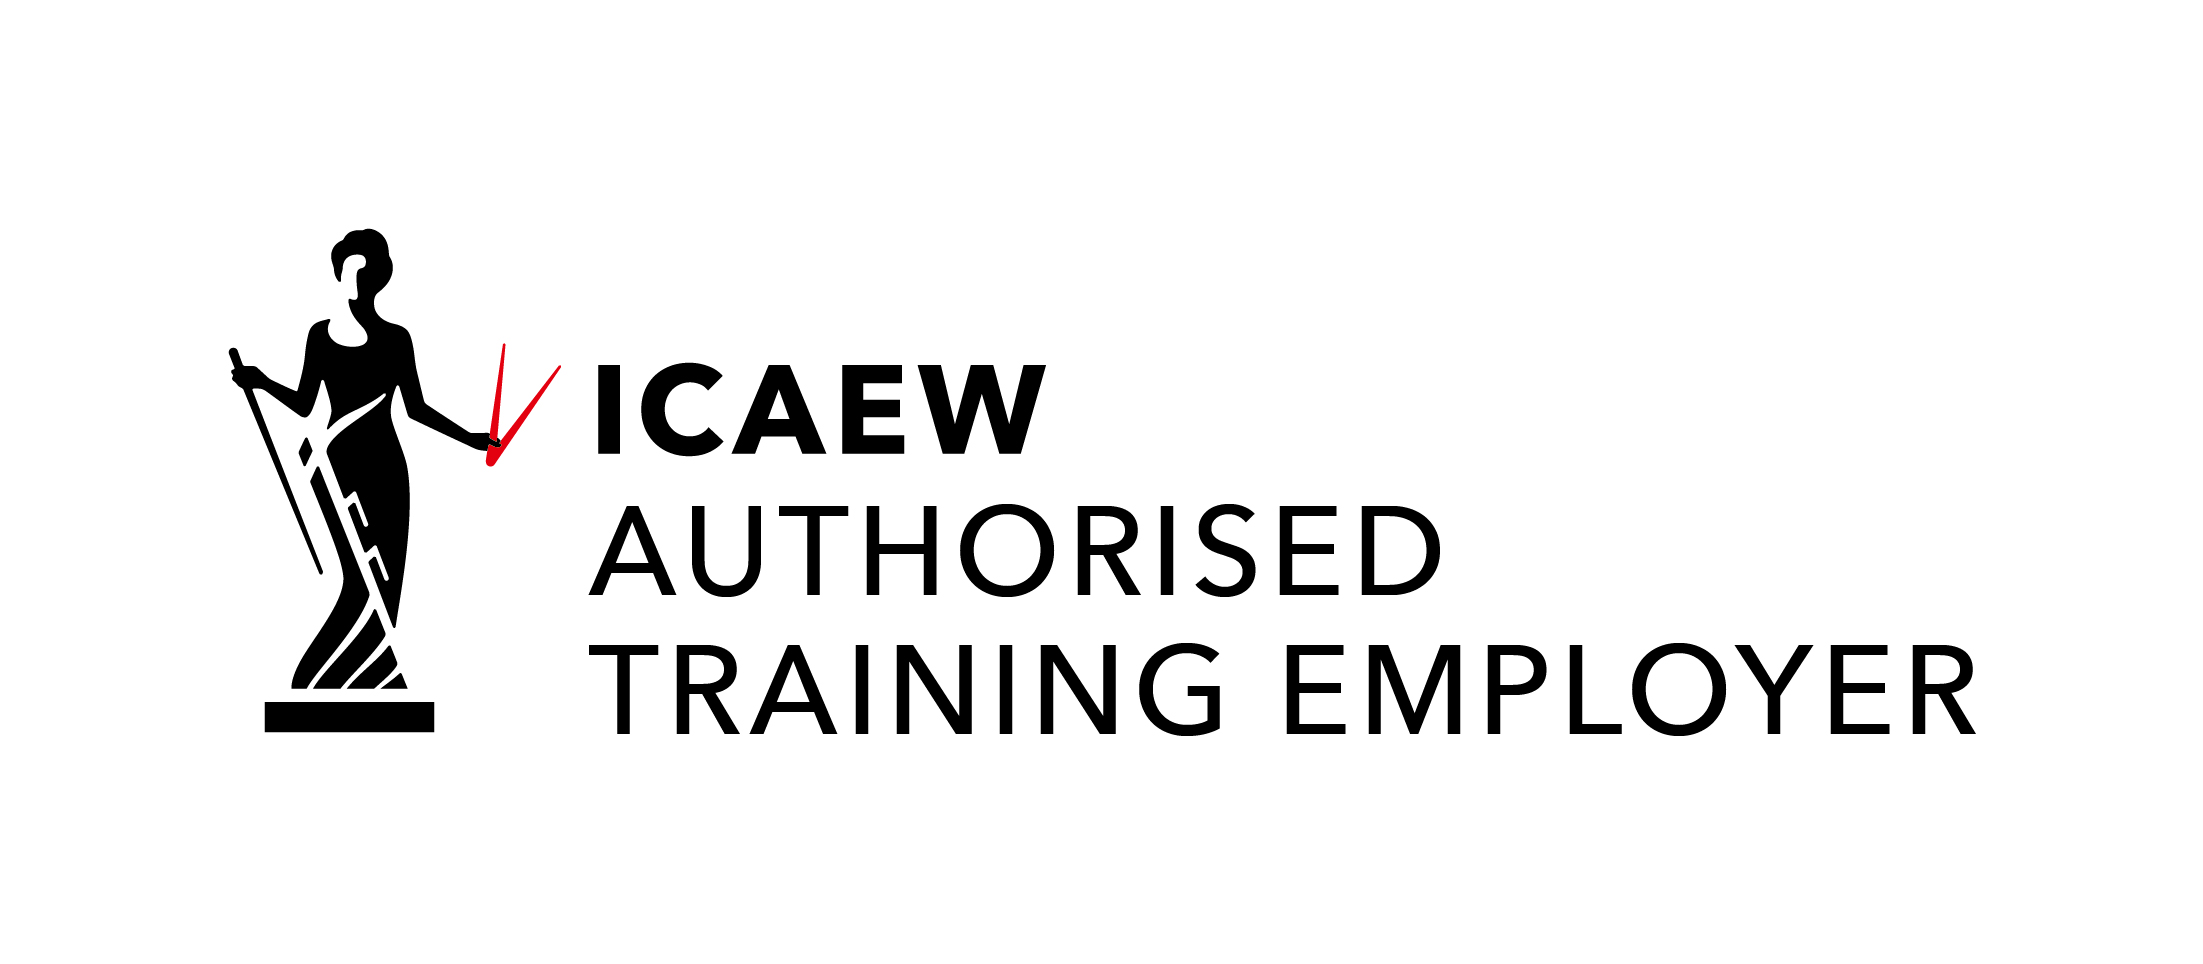 ICAEW Chartered Accountant Authorised ATE